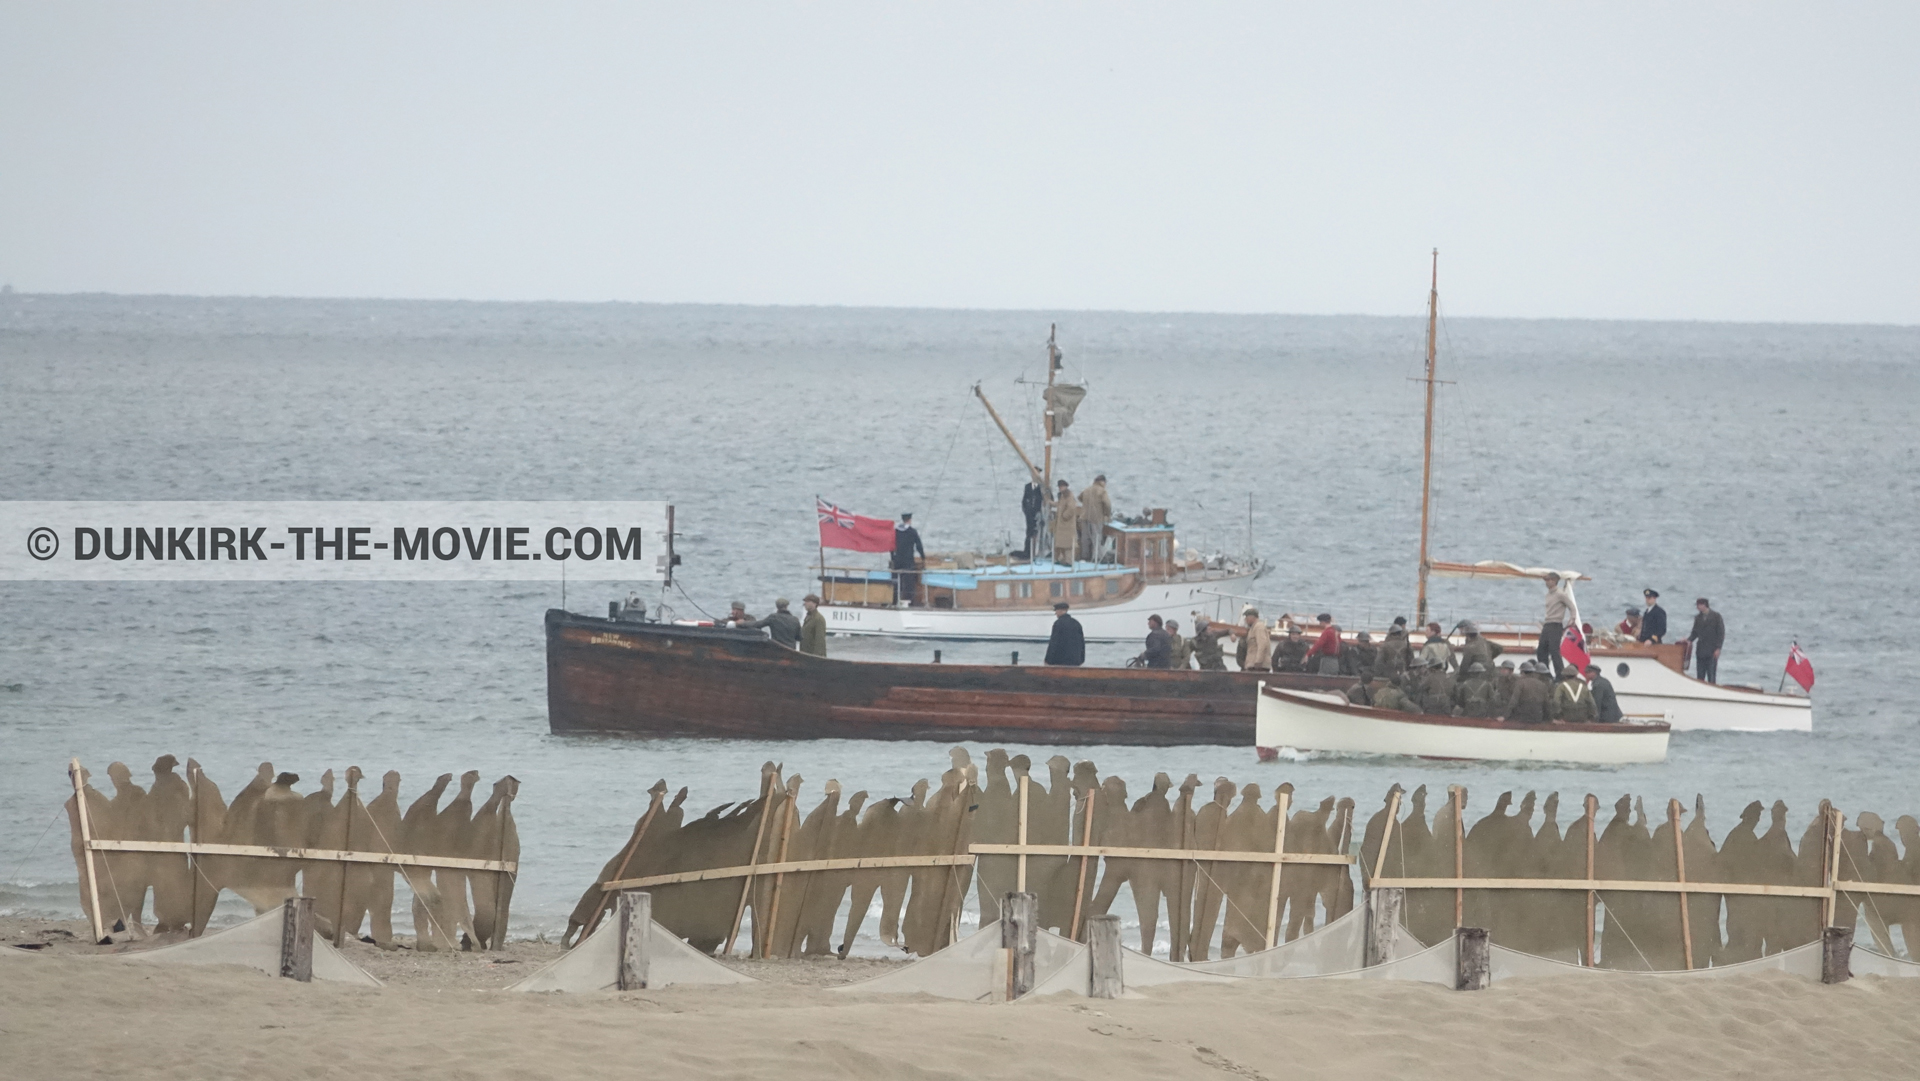 Picture with boat, decor, beach,  from behind the scene of the Dunkirk movie by Nolan